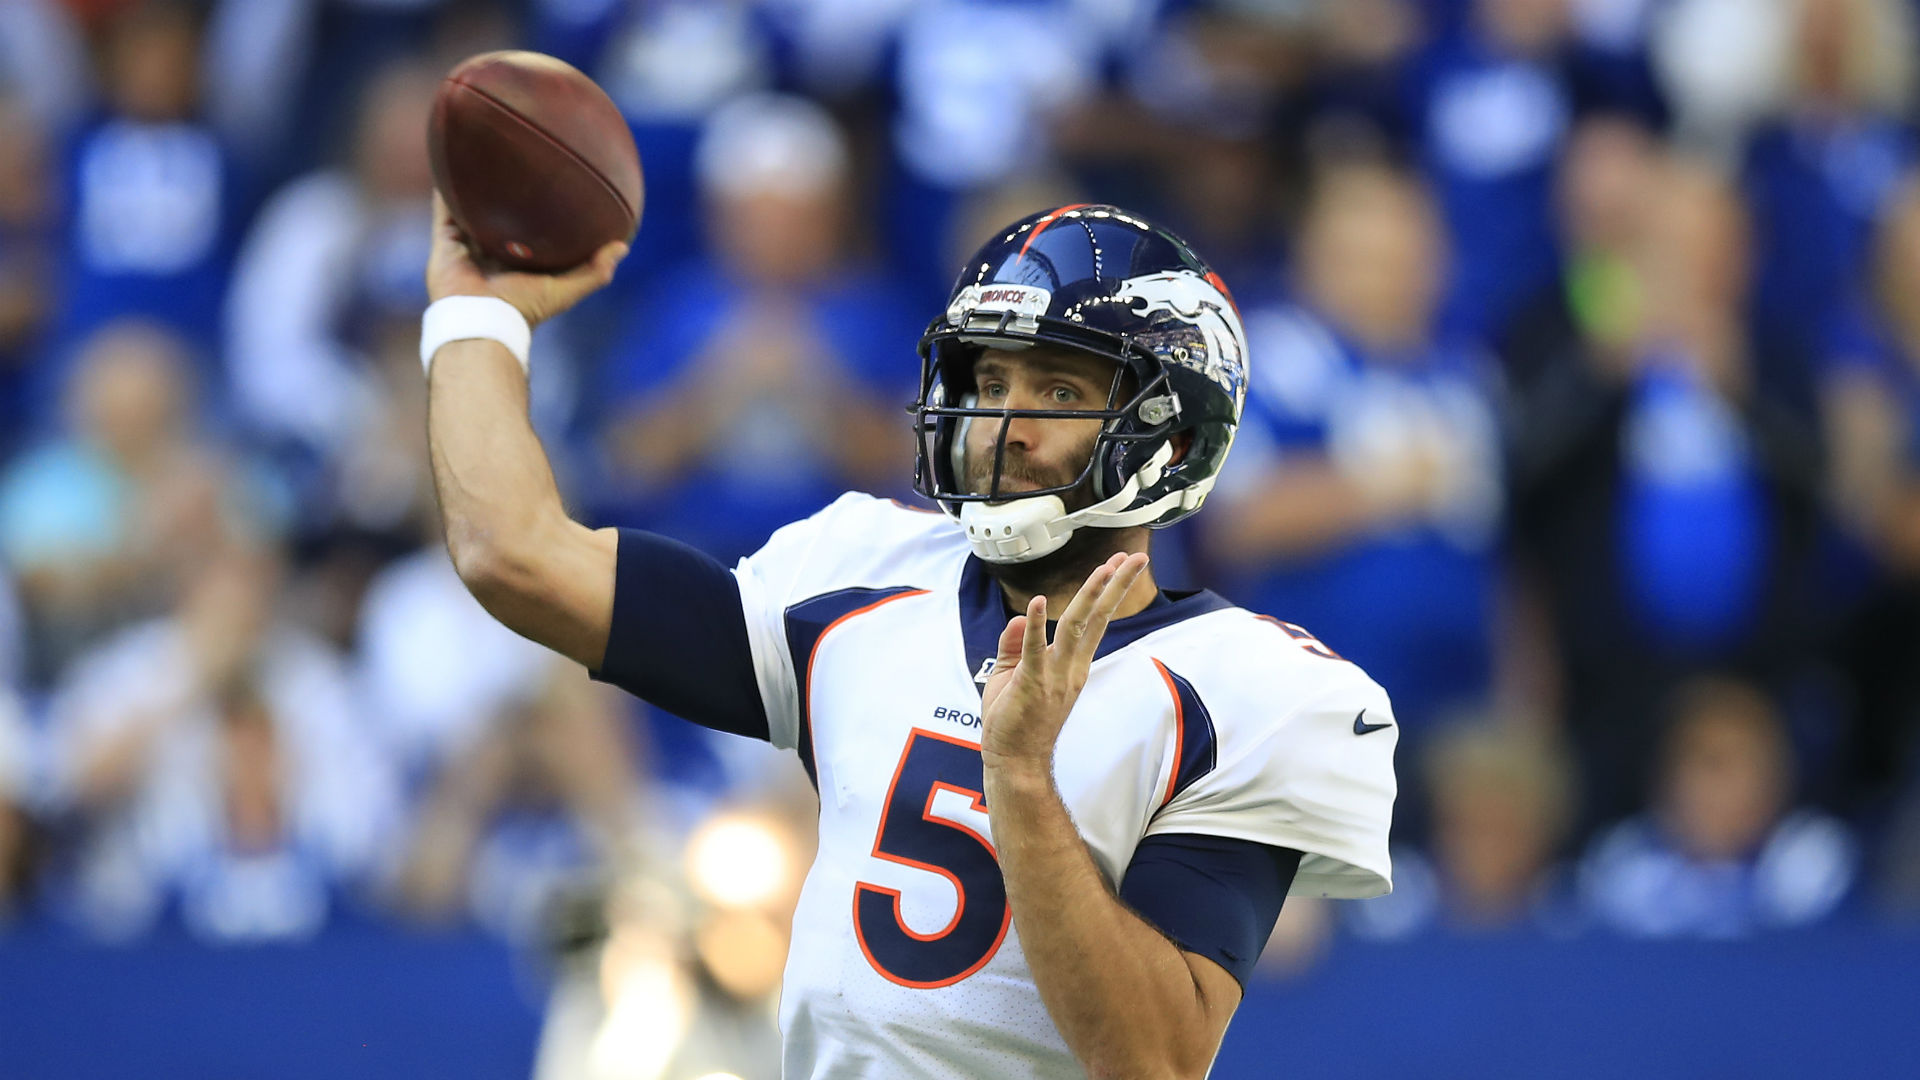 Joe Flacco has agreed to a one-year deal with the New York Jets and is likely to provide back-up to Sam Darnold.